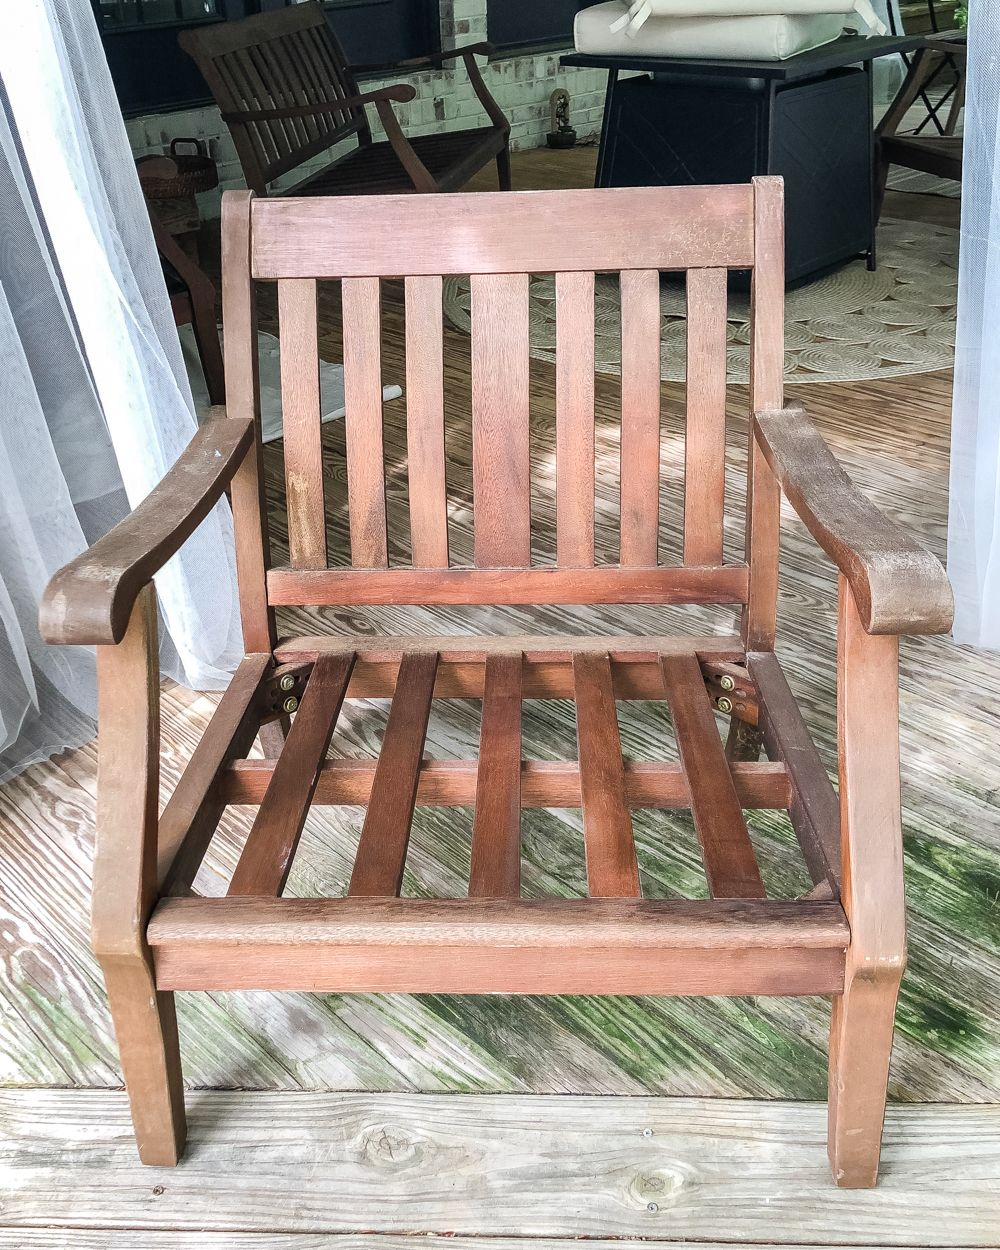 How To Restore Wood Outdoor Furniture | Porches, Patios Throughout 2 Person Light Teak Oil Wood Outdoor Swings (View 11 of 25)